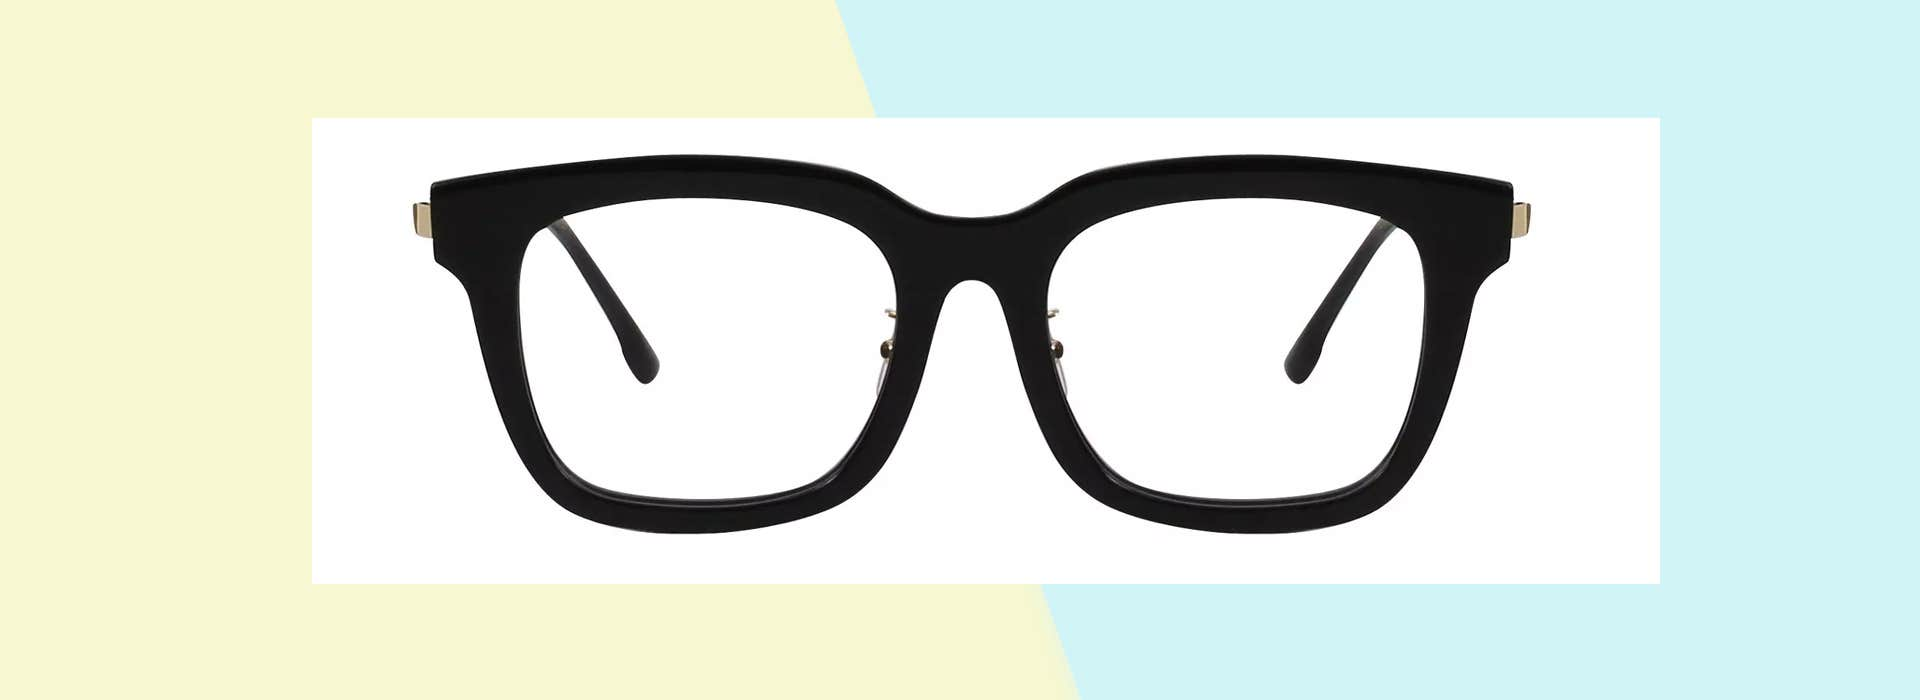 Buy 123026-c Prescription Eyeglasses